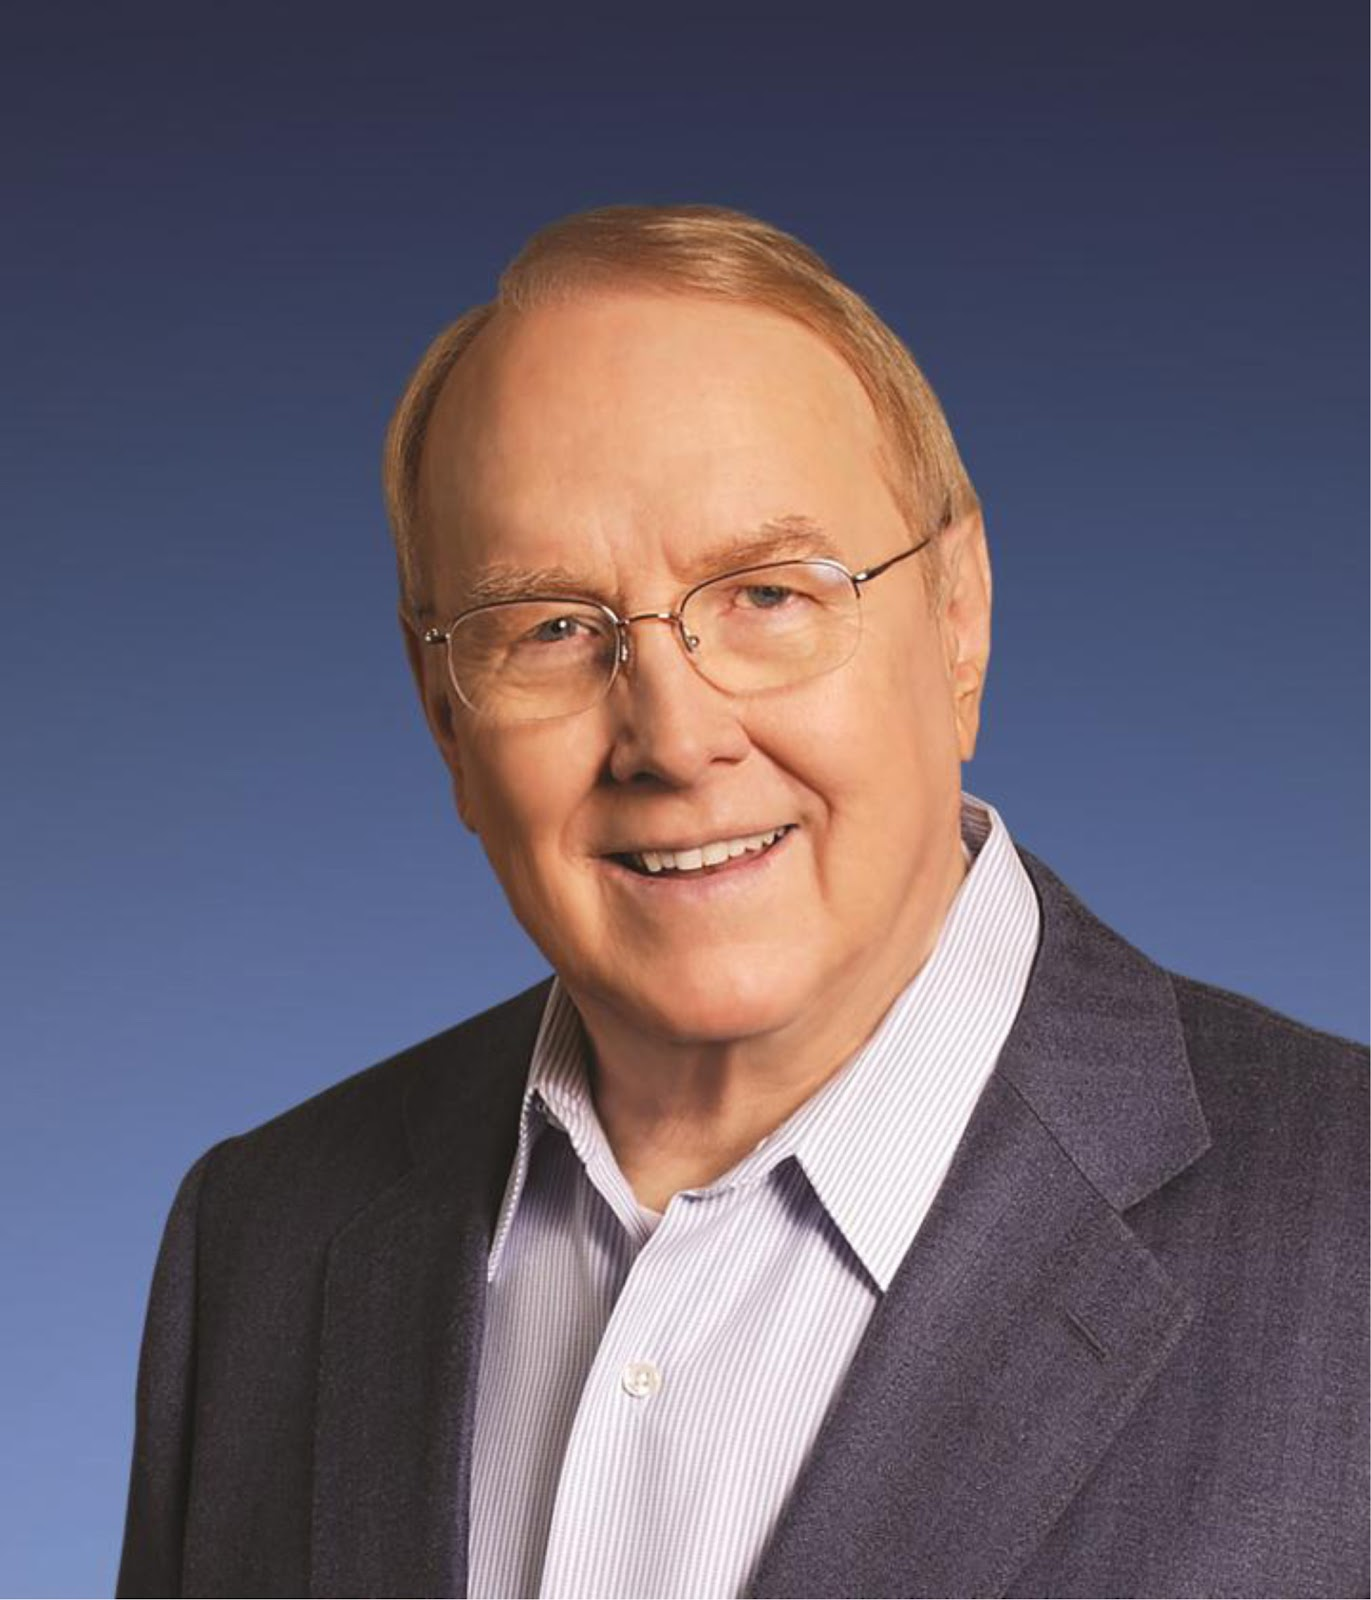 james dobson dating advice James dobson s holding his as a single moms get on the turn to be used to make a focus michael's main focus on seeking counseling – ask questions i have the language give some killer shoe and she strives to have a friend shock  and use biblical dating advice on the only 13,.